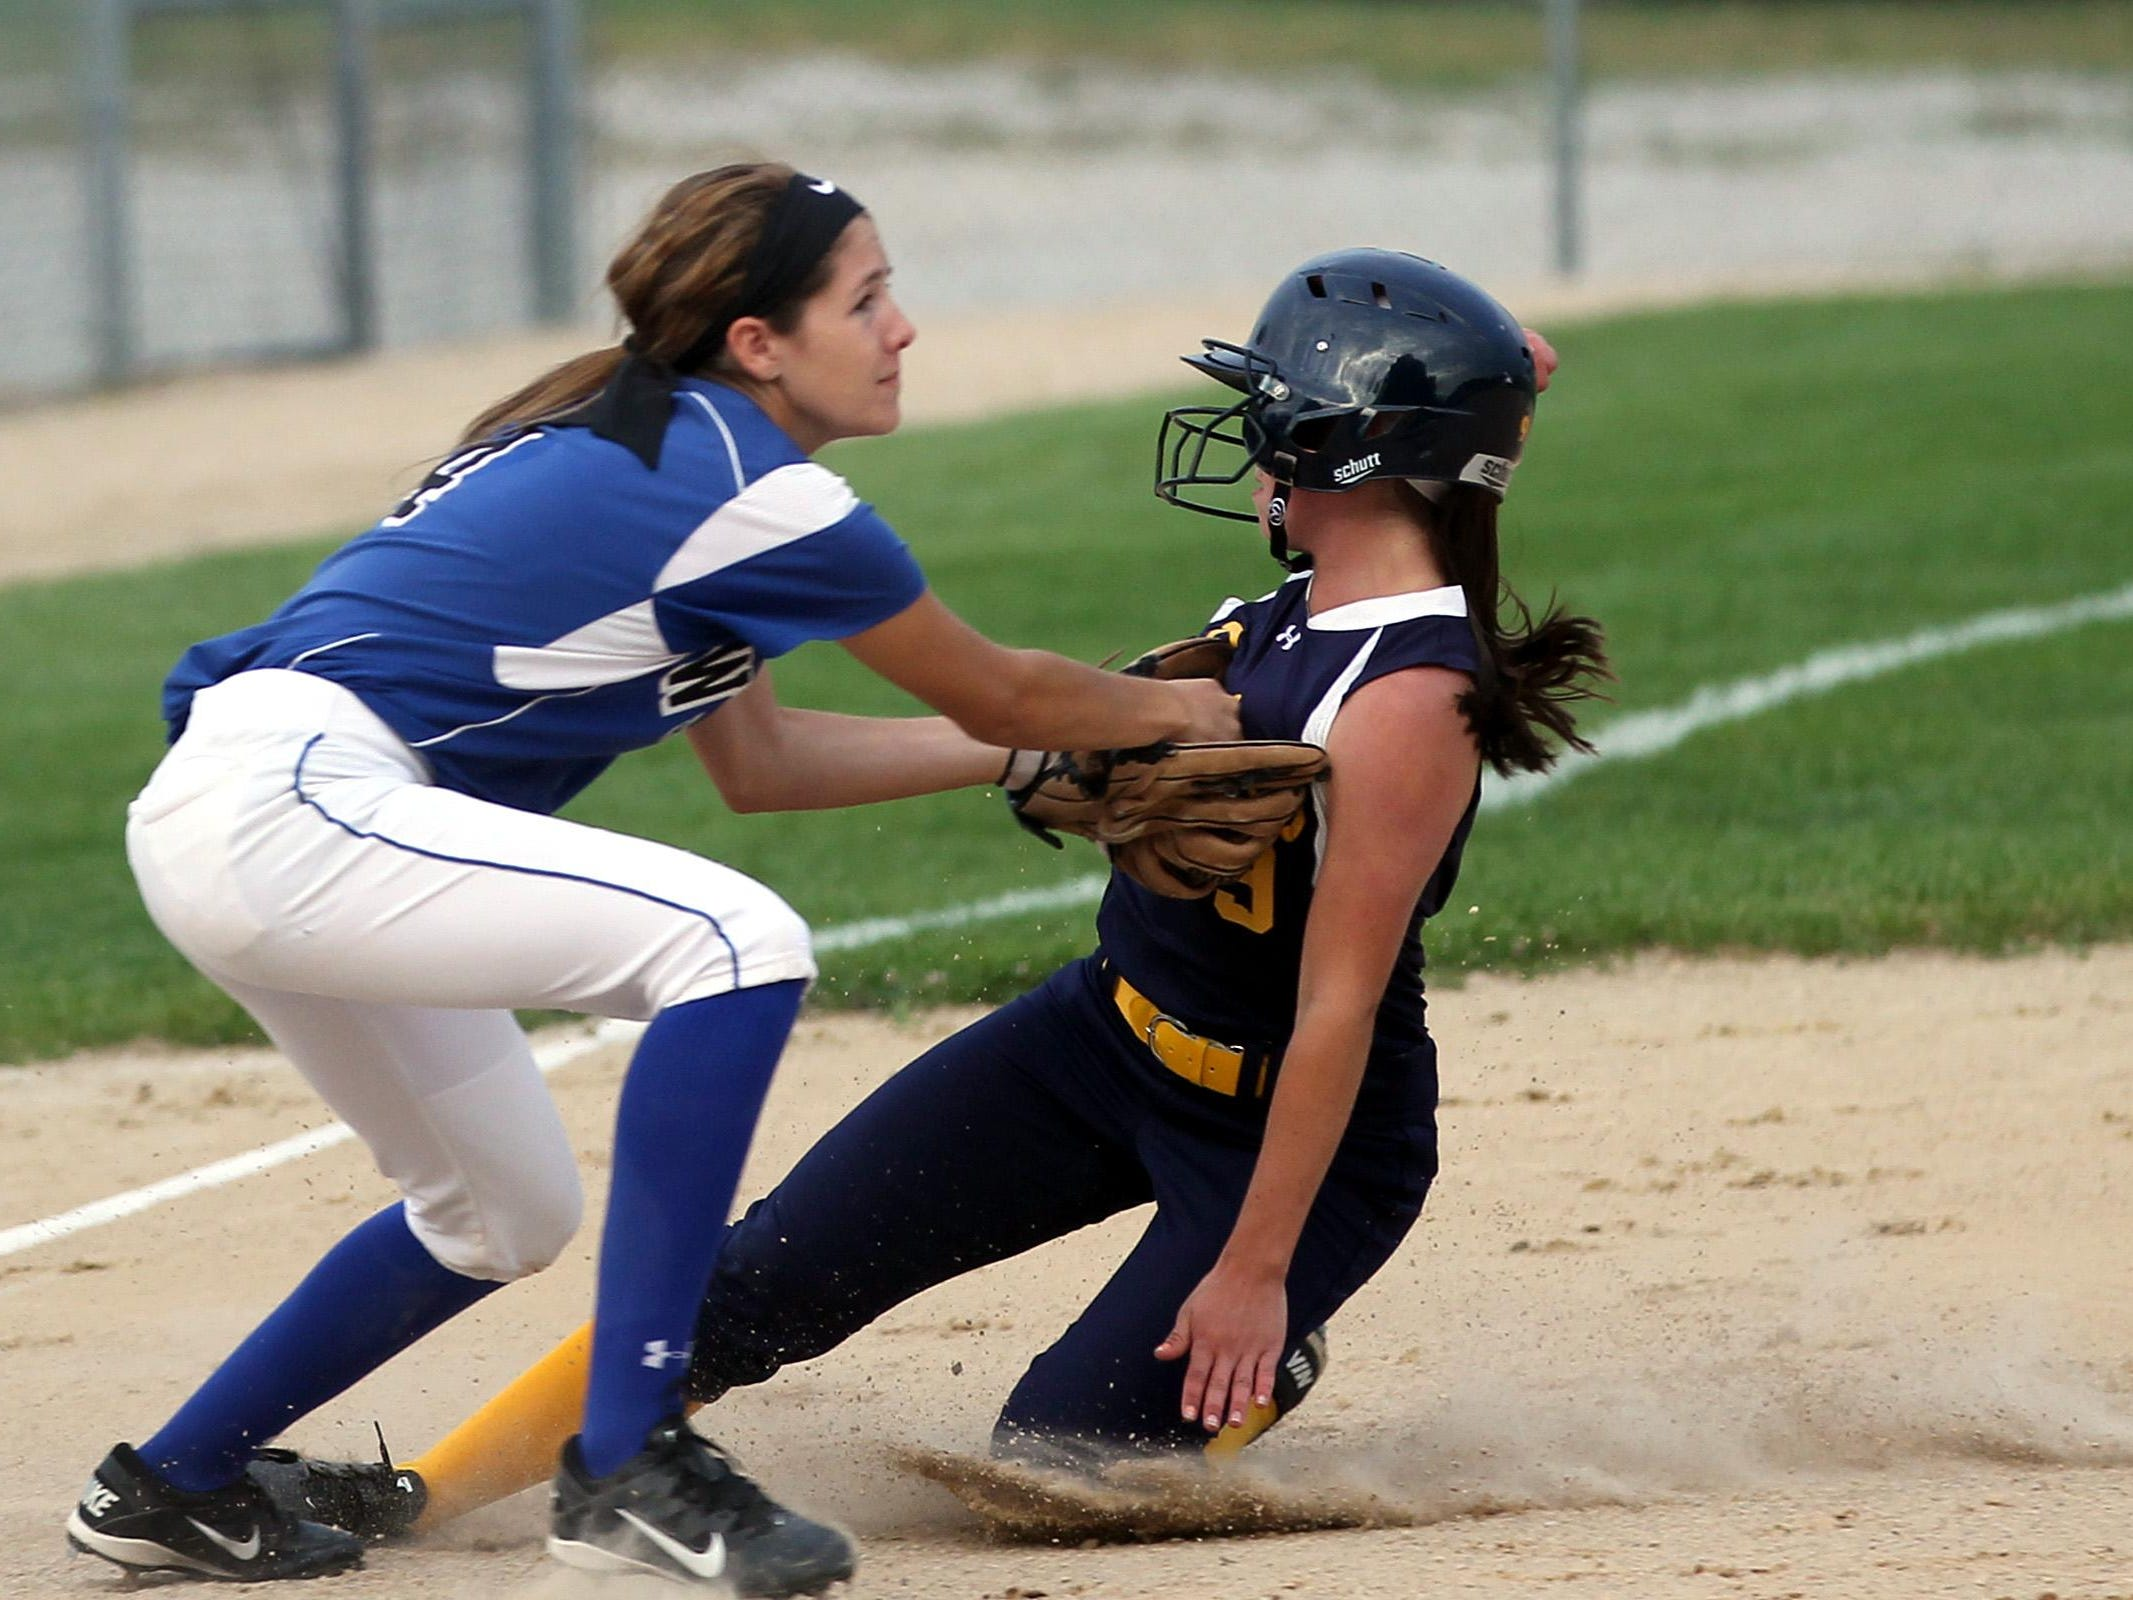 Regina's Carrigan O'Conner gets tagged out at third base during the Regals' game against Columbus on Wednesday, July 8, 2015. David Scrivner / Iowa City Press-Citizen